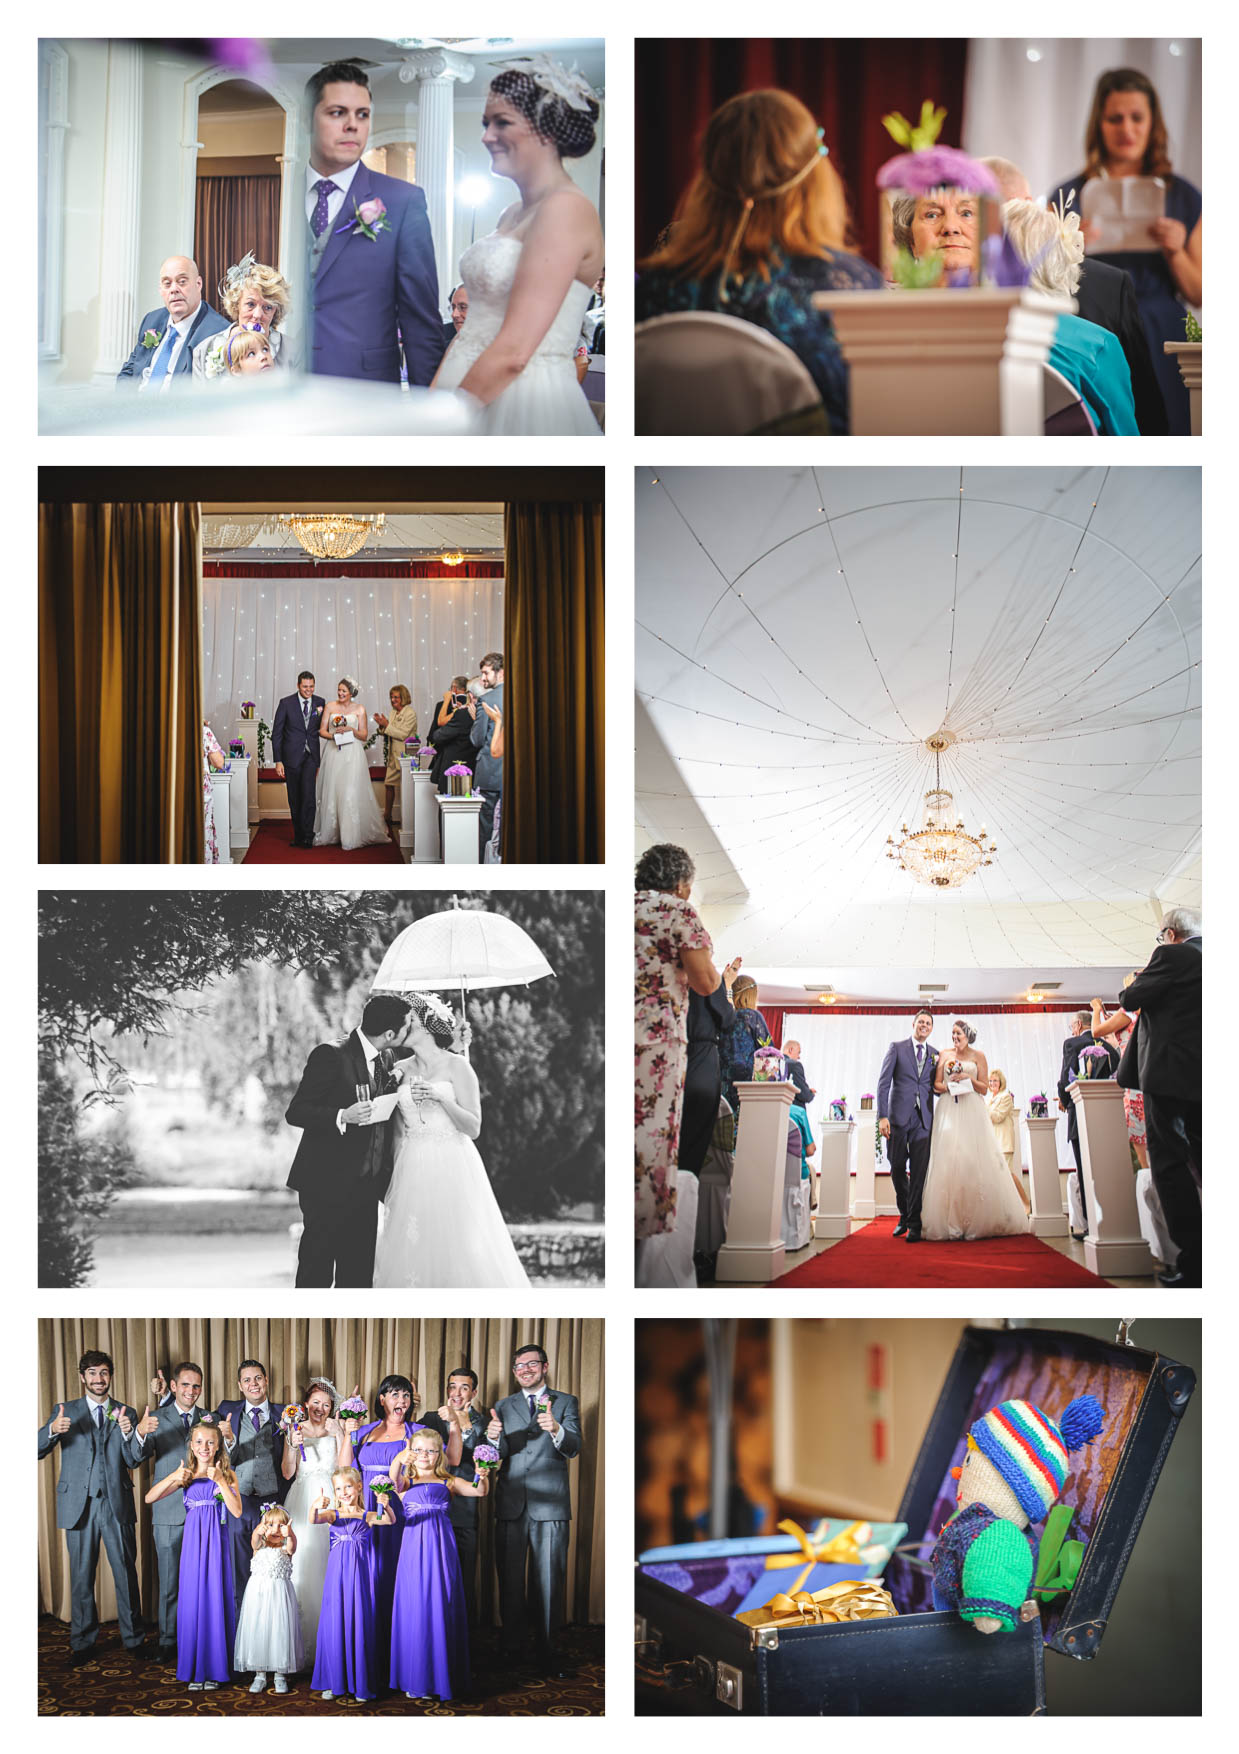 Photos from a wedding at cwrt Belddyn by Owen Mathias Photography cardiff